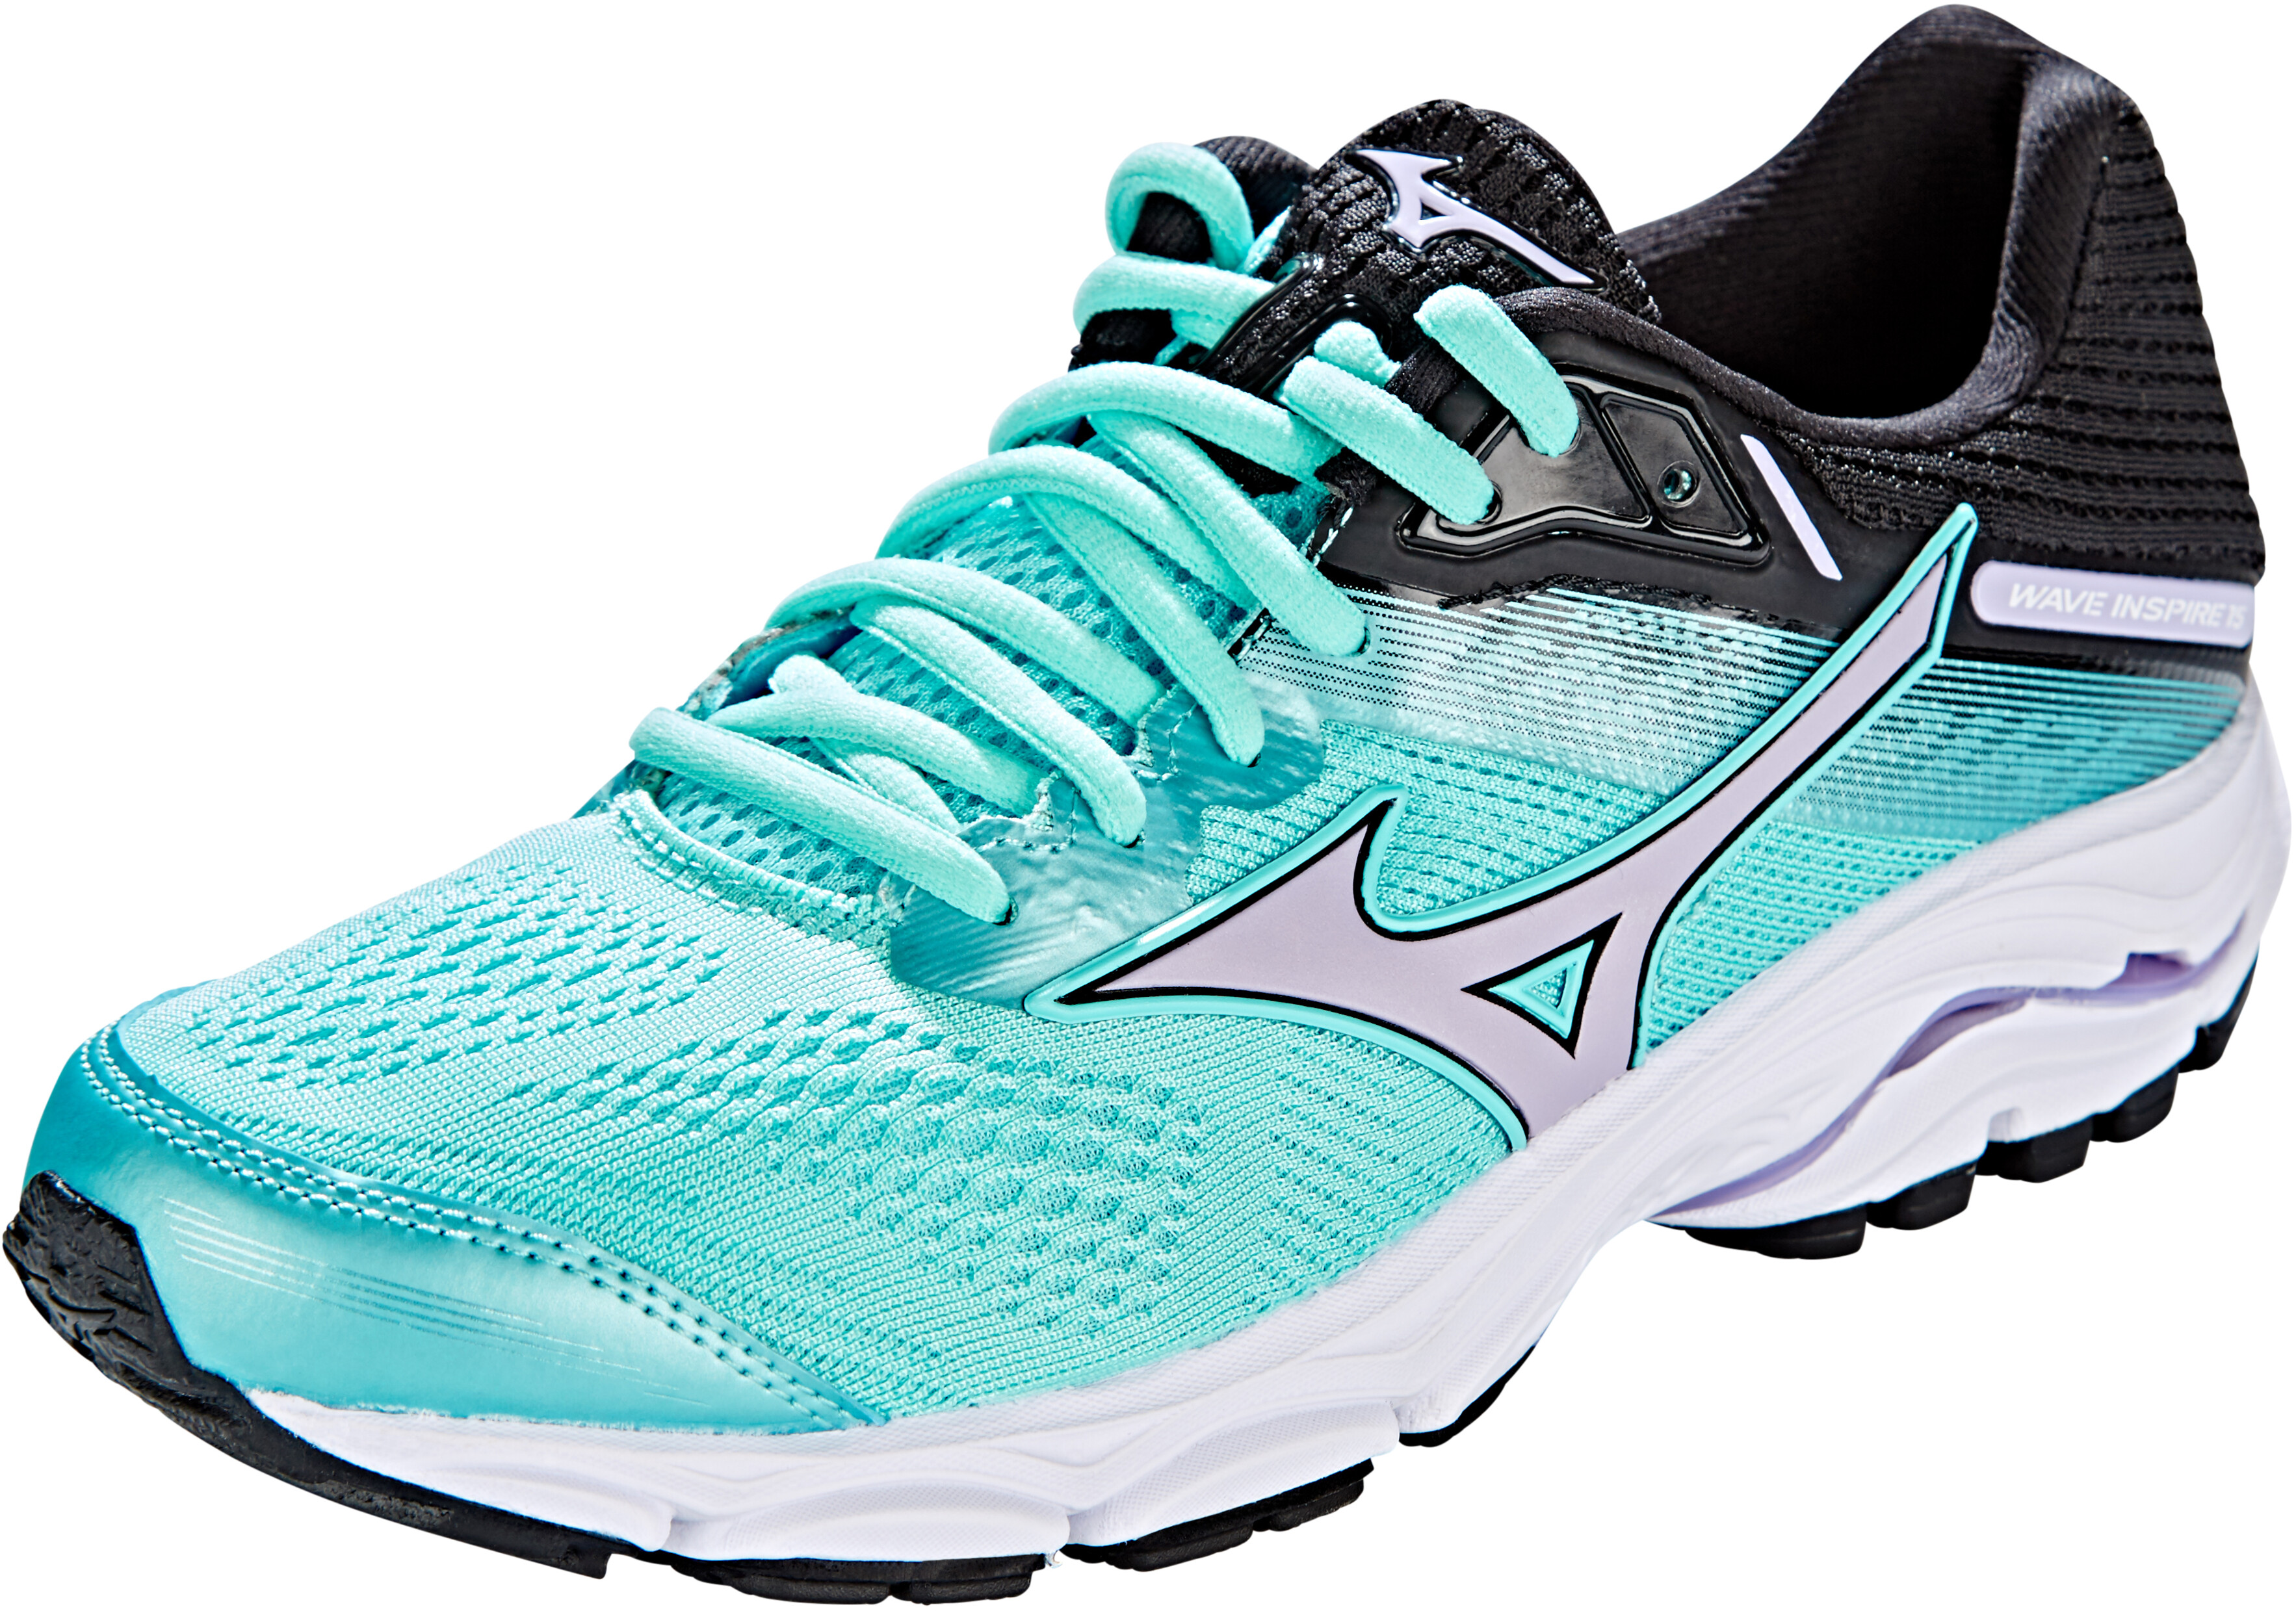 0253d0dd5f2d Mizuno Wave Inspire 15 Running Shoes Women purple/blue at Addnature ...